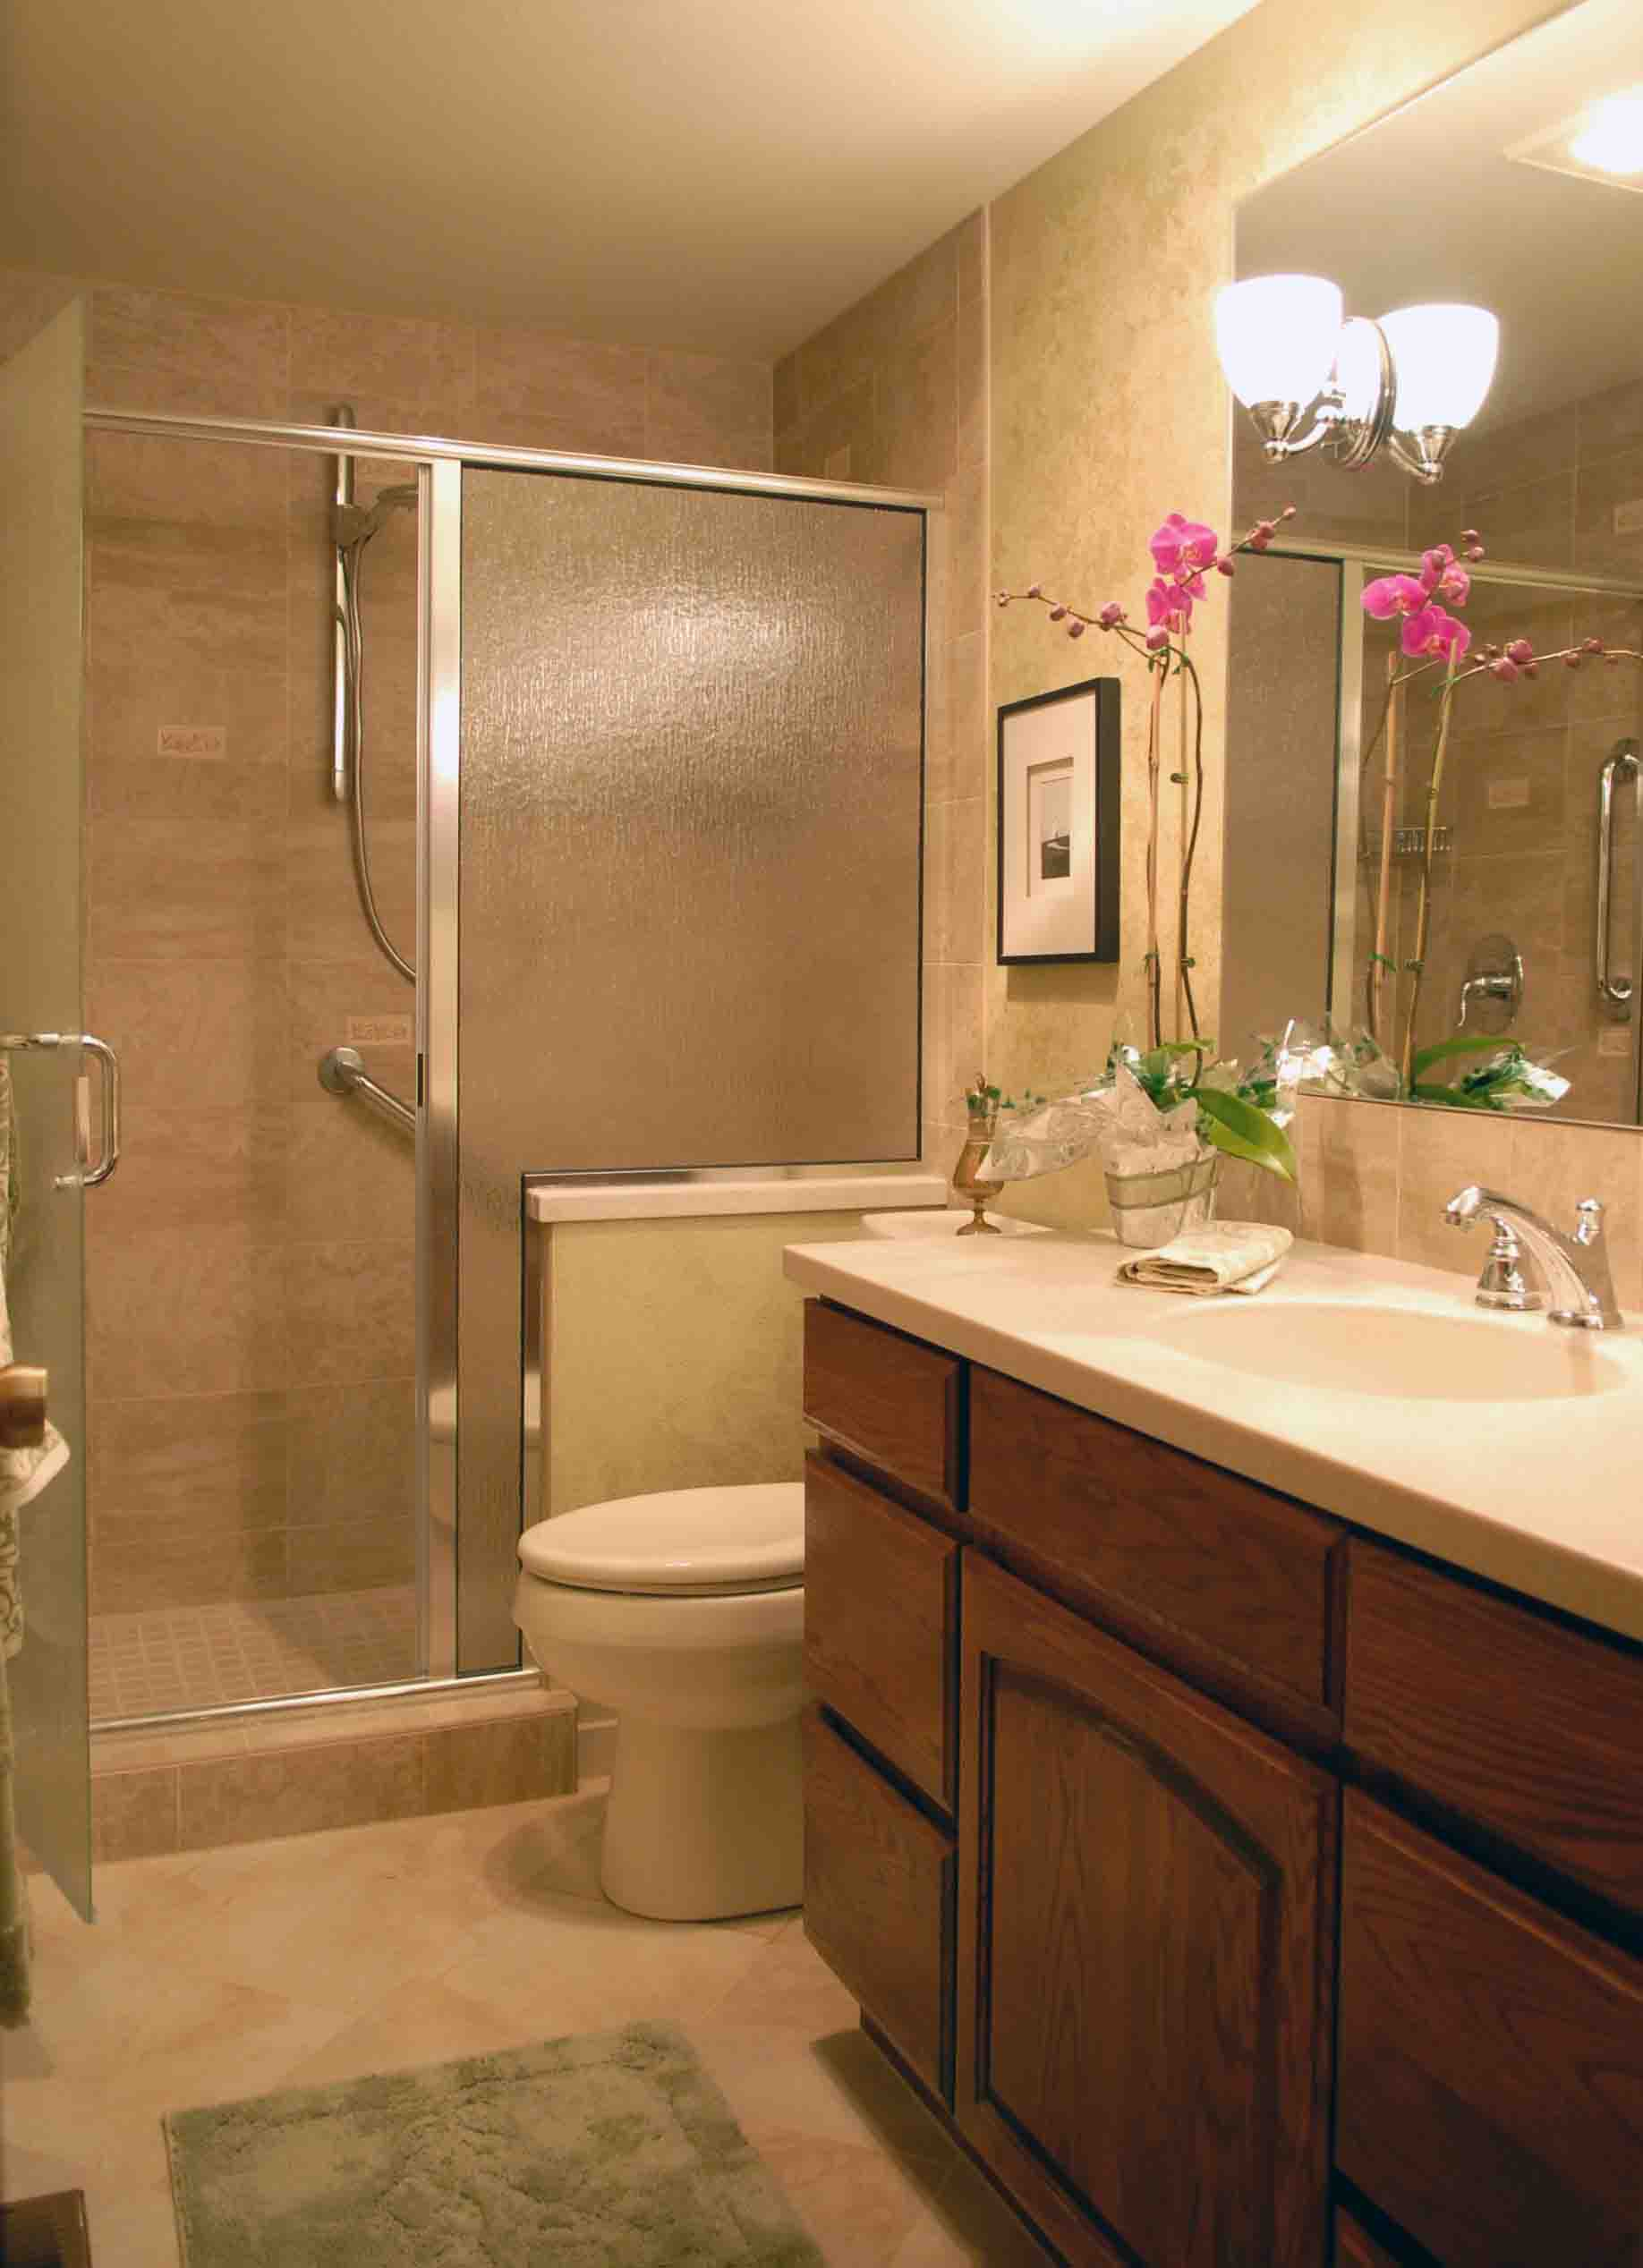 Use Oak Vanity and Closed Shower Space Completing Small Bathroom Remodel Ideas with Clear Wall Mirror